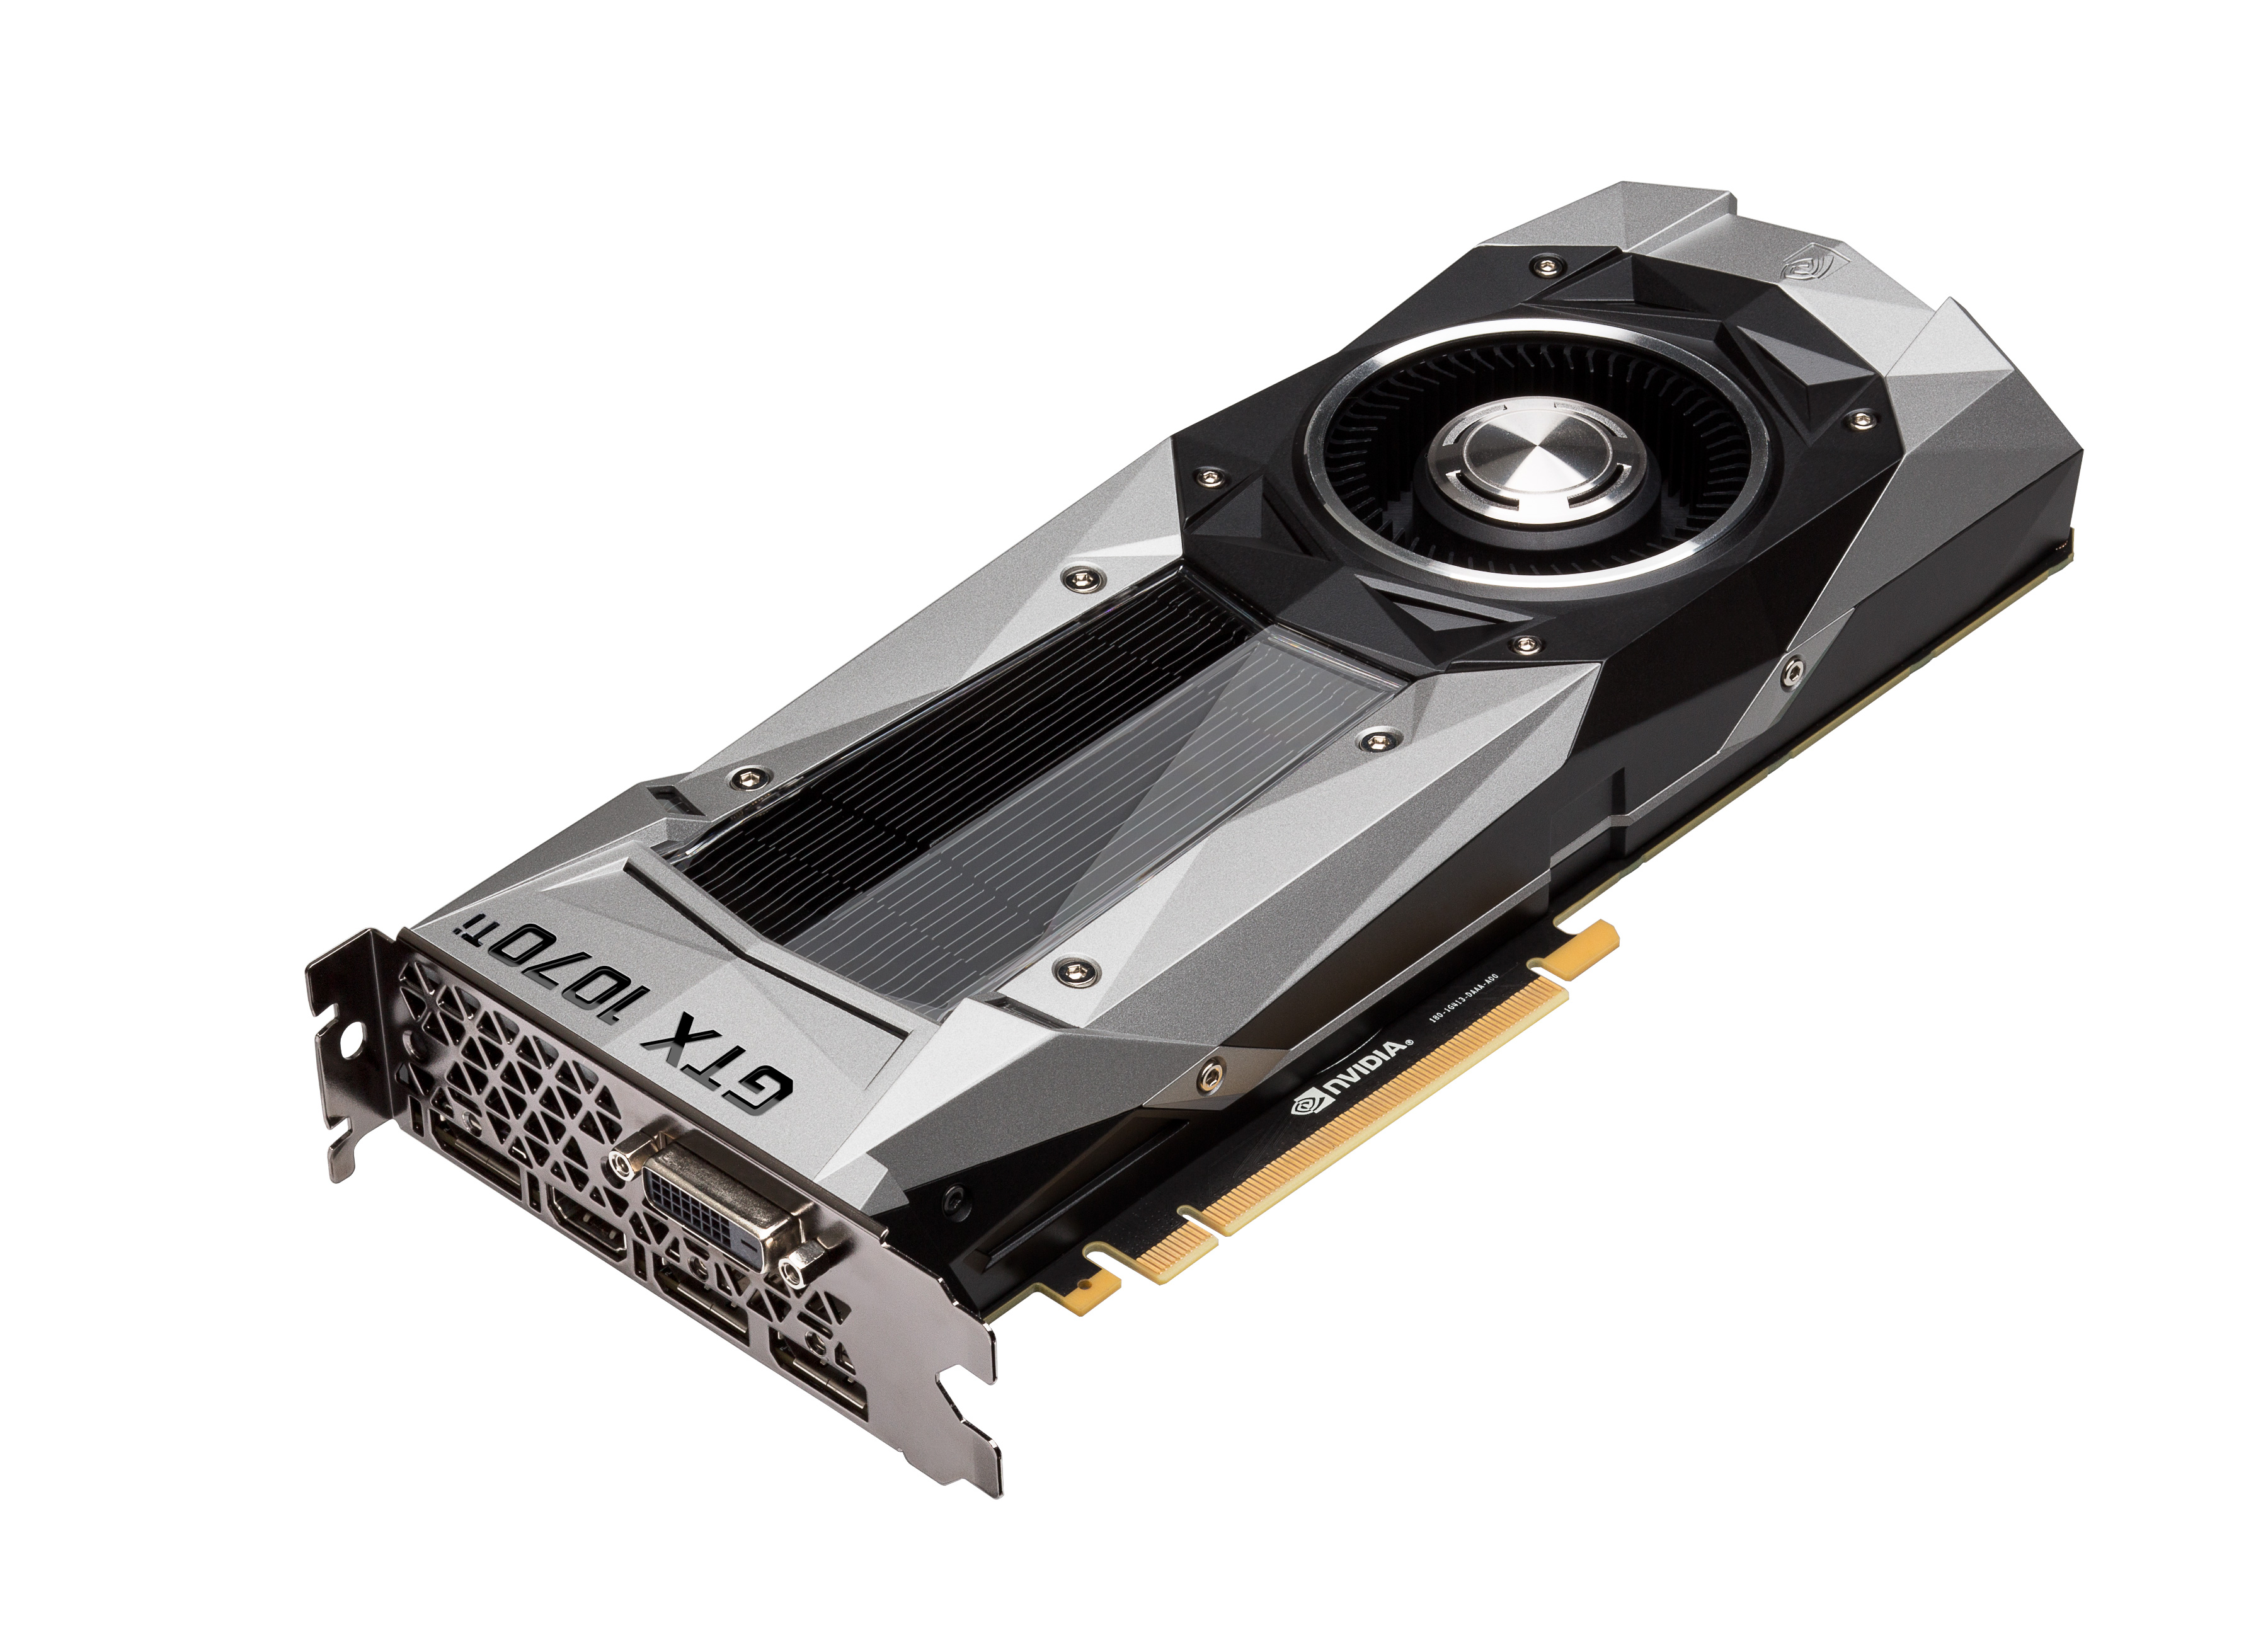 Final Words - The NVIDIA GeForce GTX 1070 Ti Founders